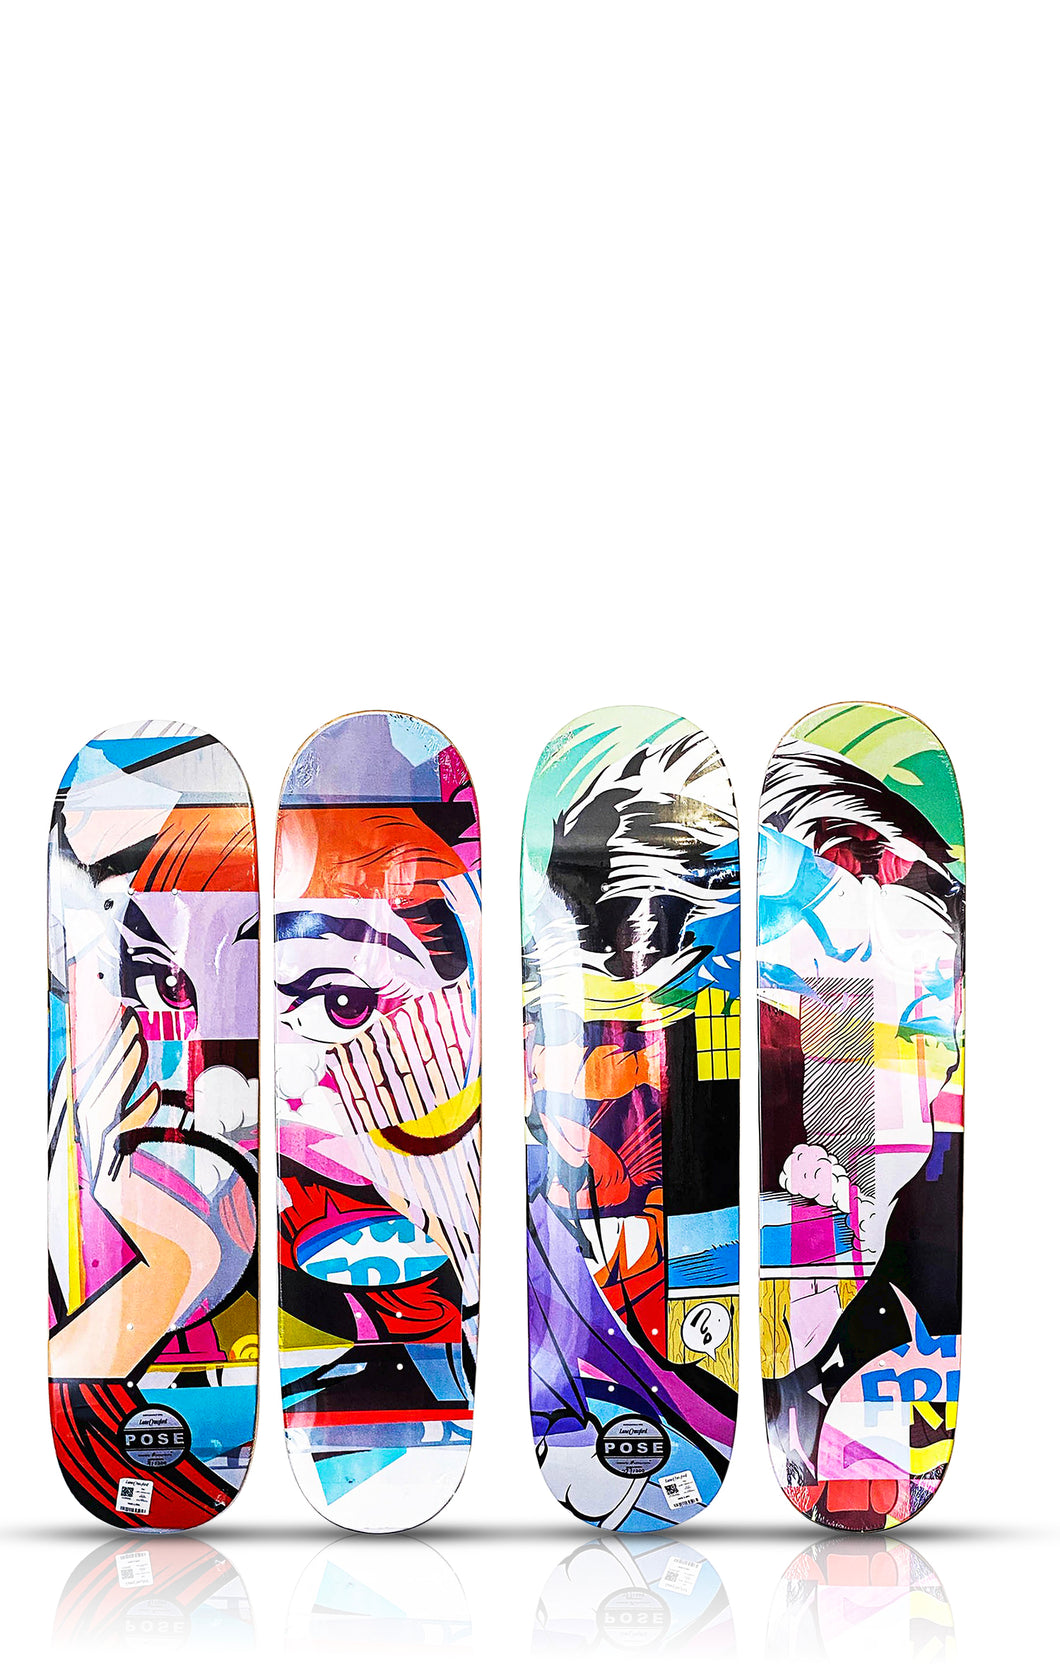 POSE 'Mirror/Gent' Skateboard Deck SET